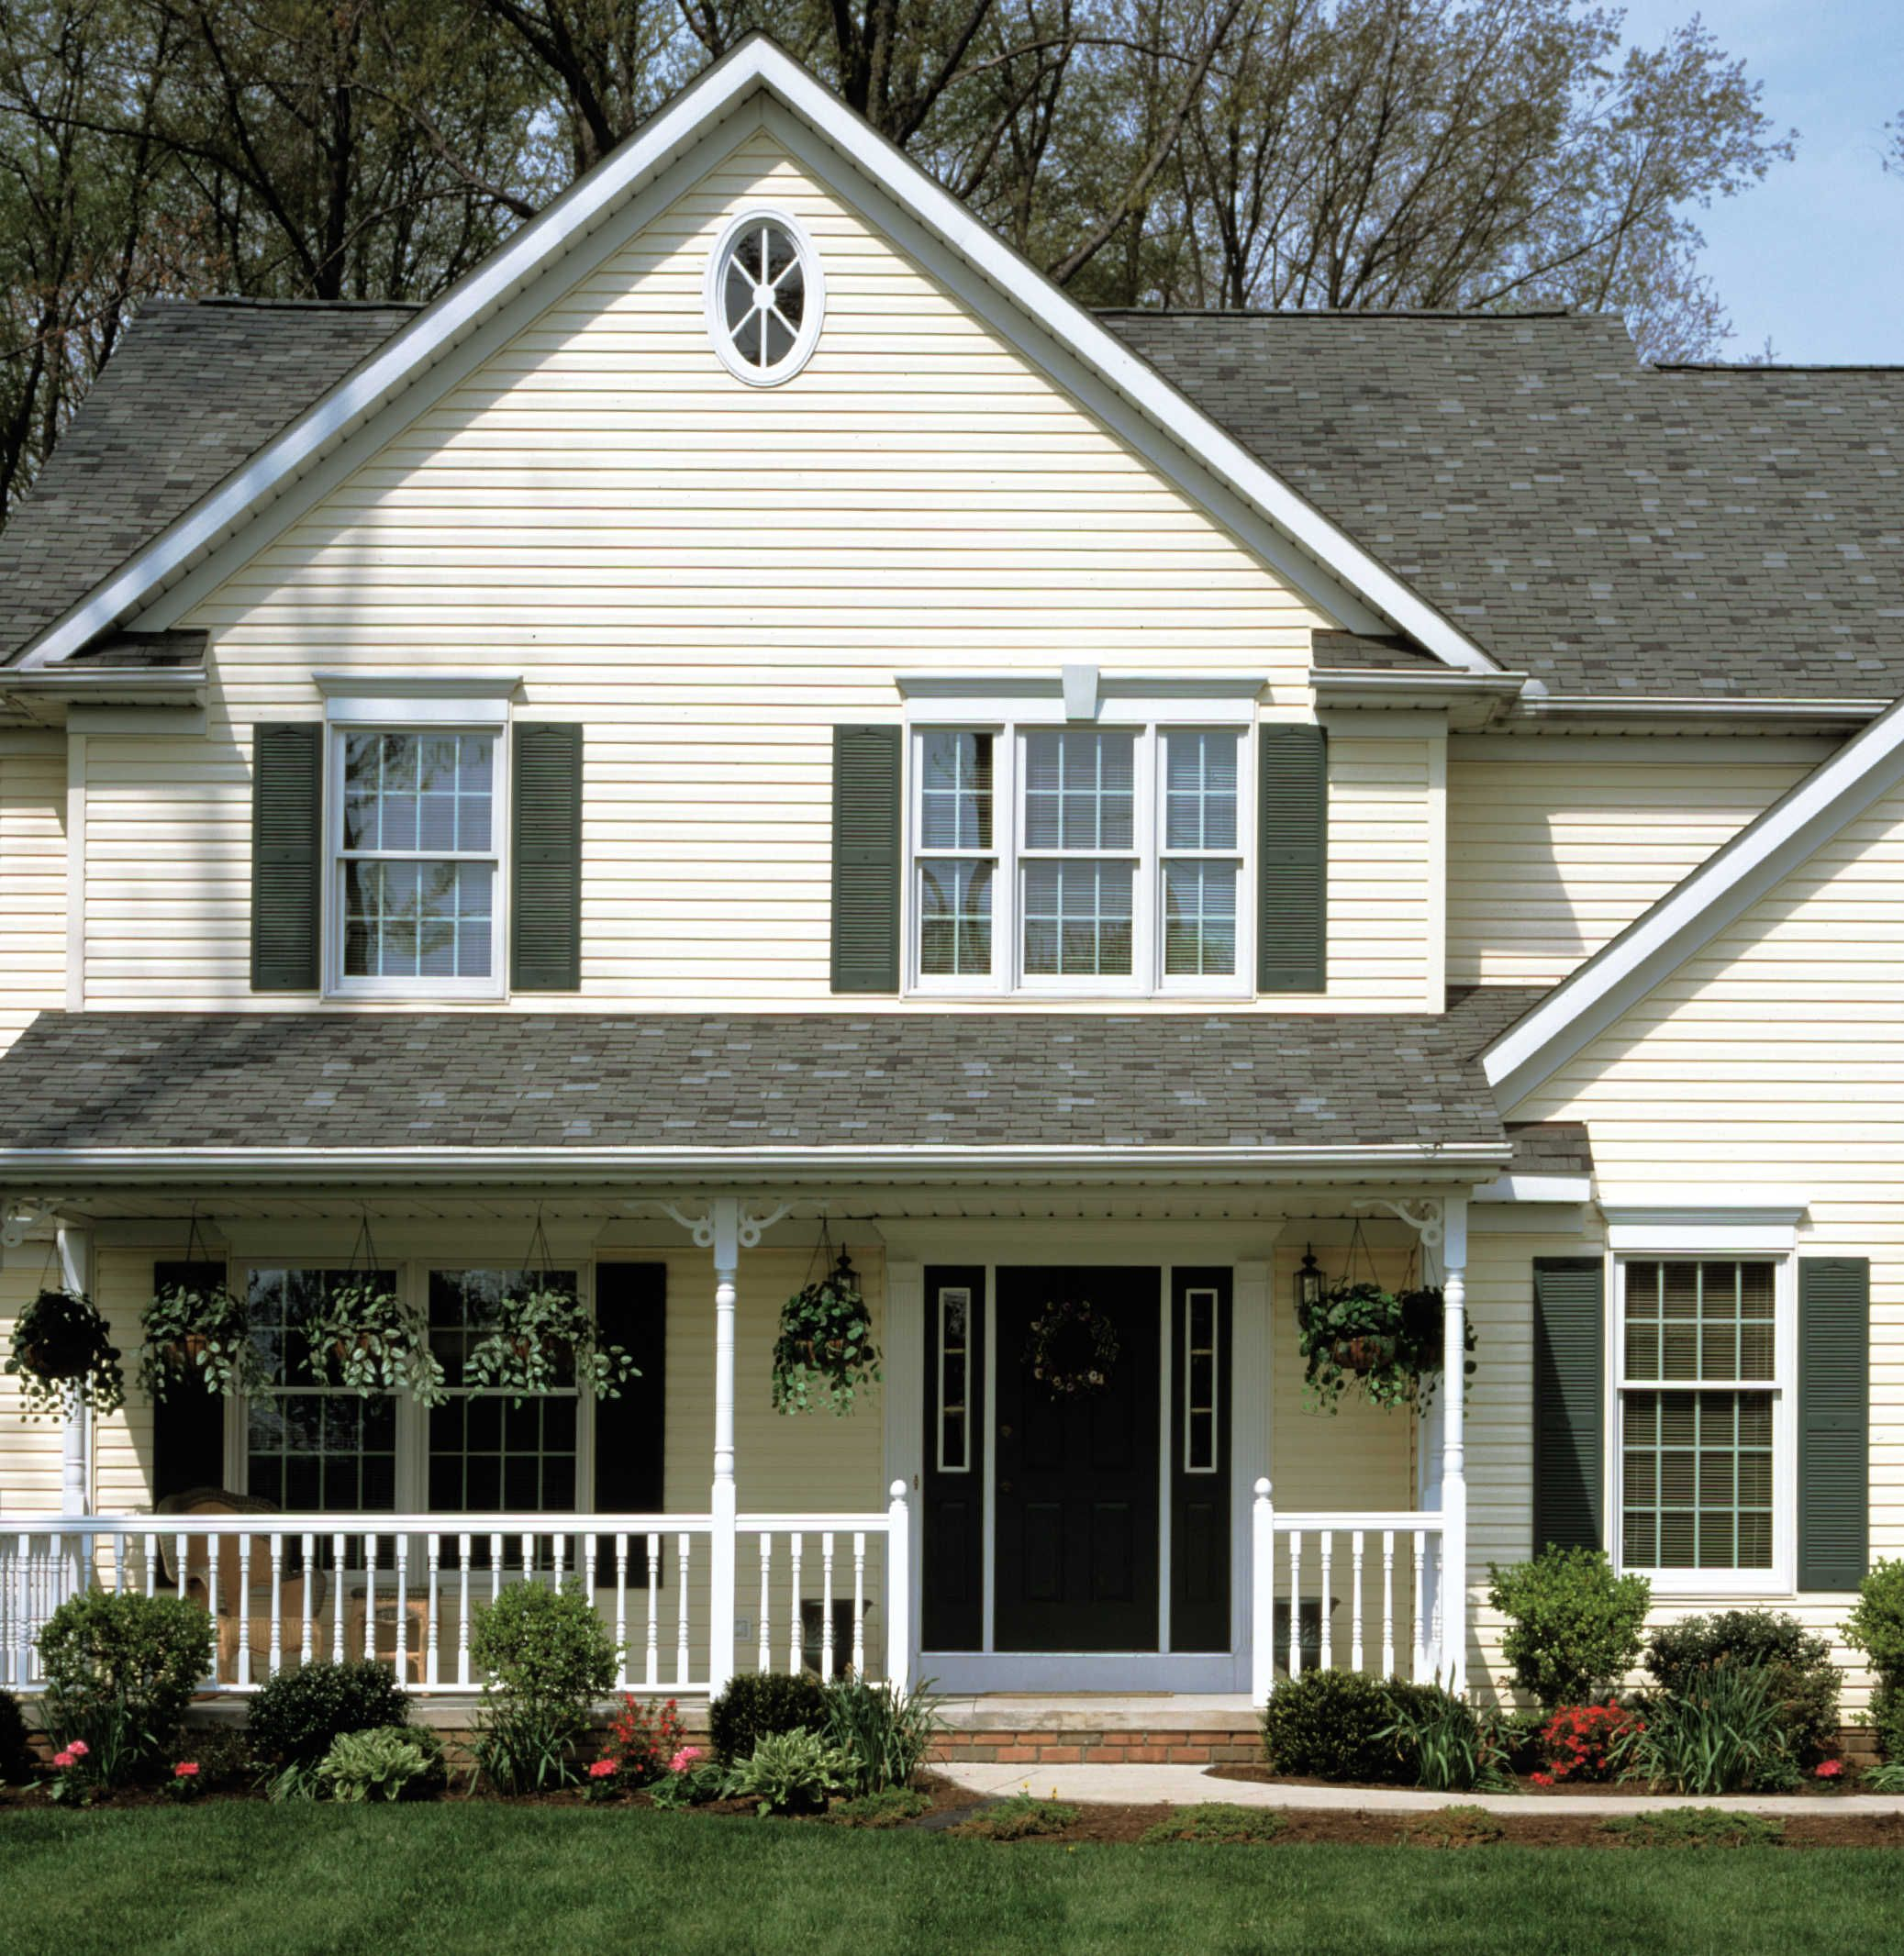 Kaycan Vinyl Siding Ivory Siding With White Trims And Black Railing Warm Classic Neutral Crea Exterior House Colors House Exterior Home Exterior Makeover